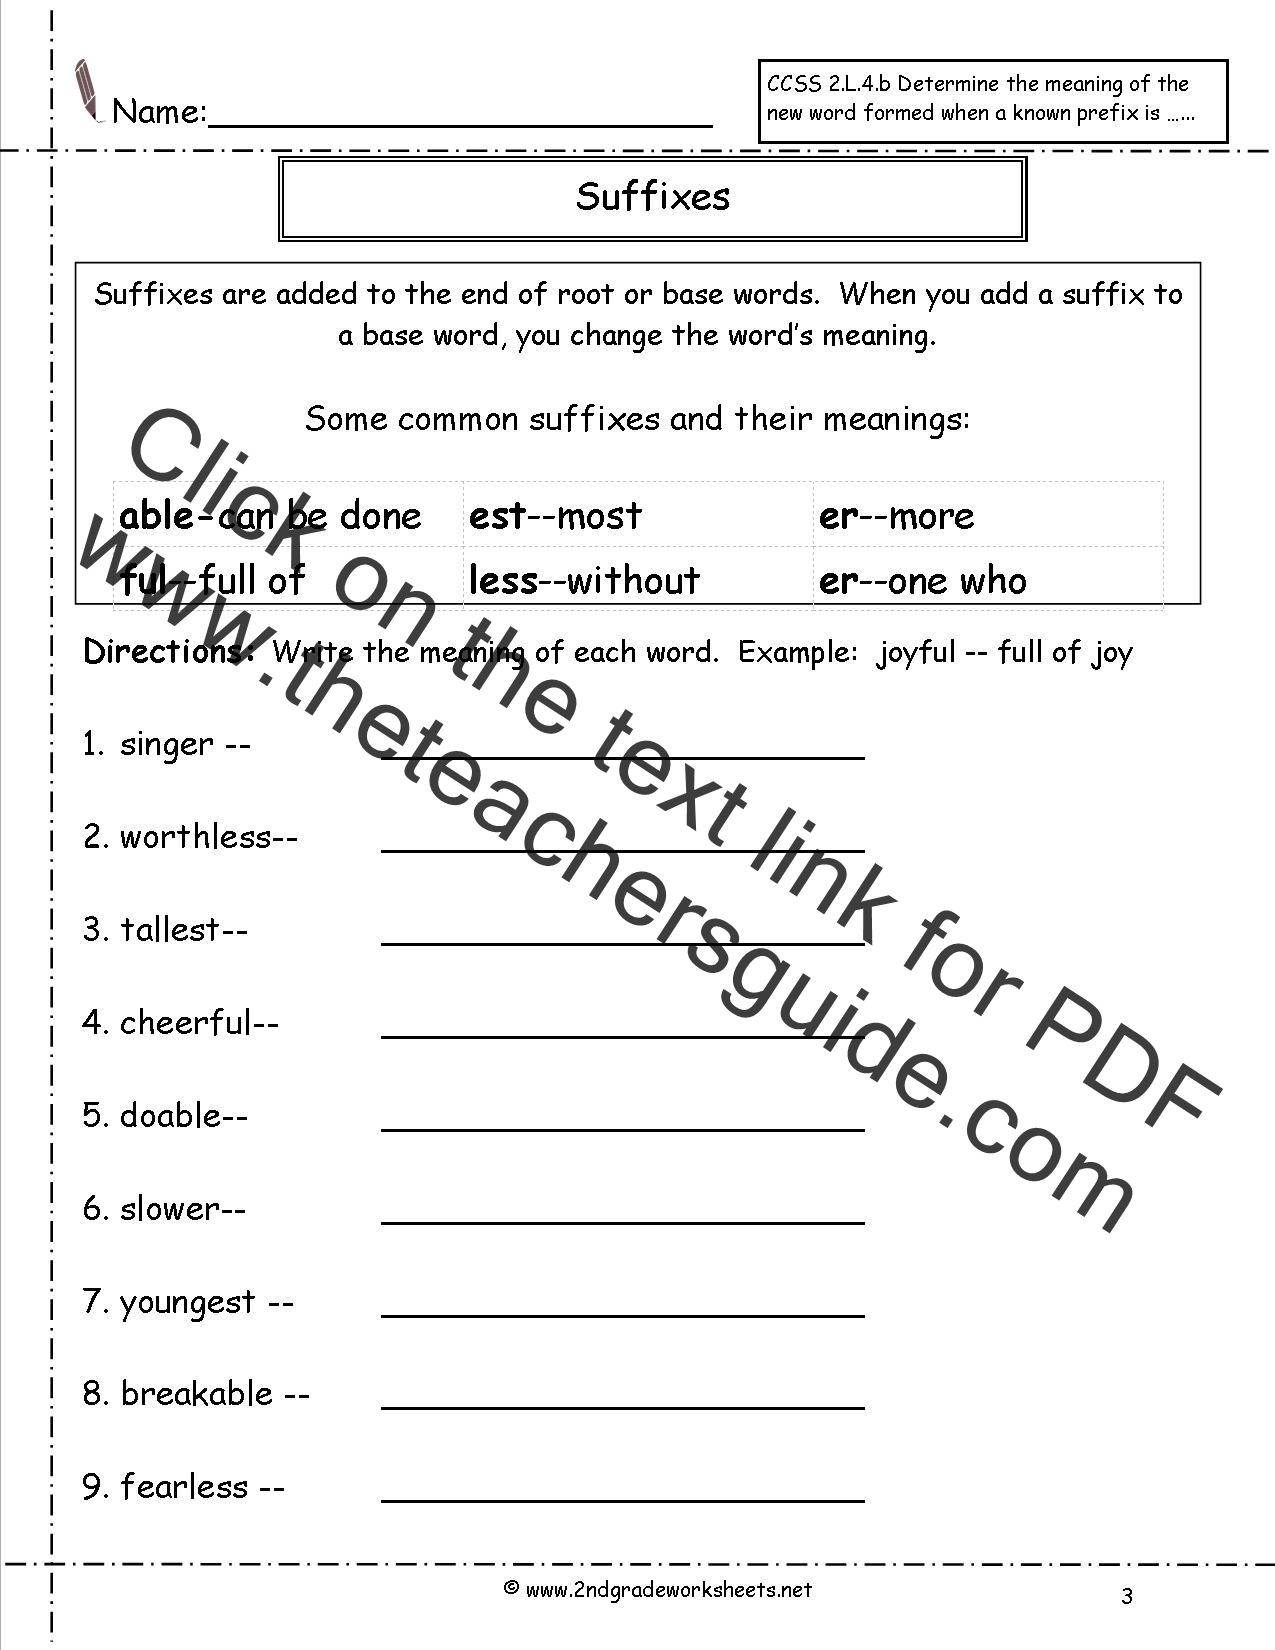 worksheet Suffix Worksheets grade prefixes worksheets suffixes worksheet